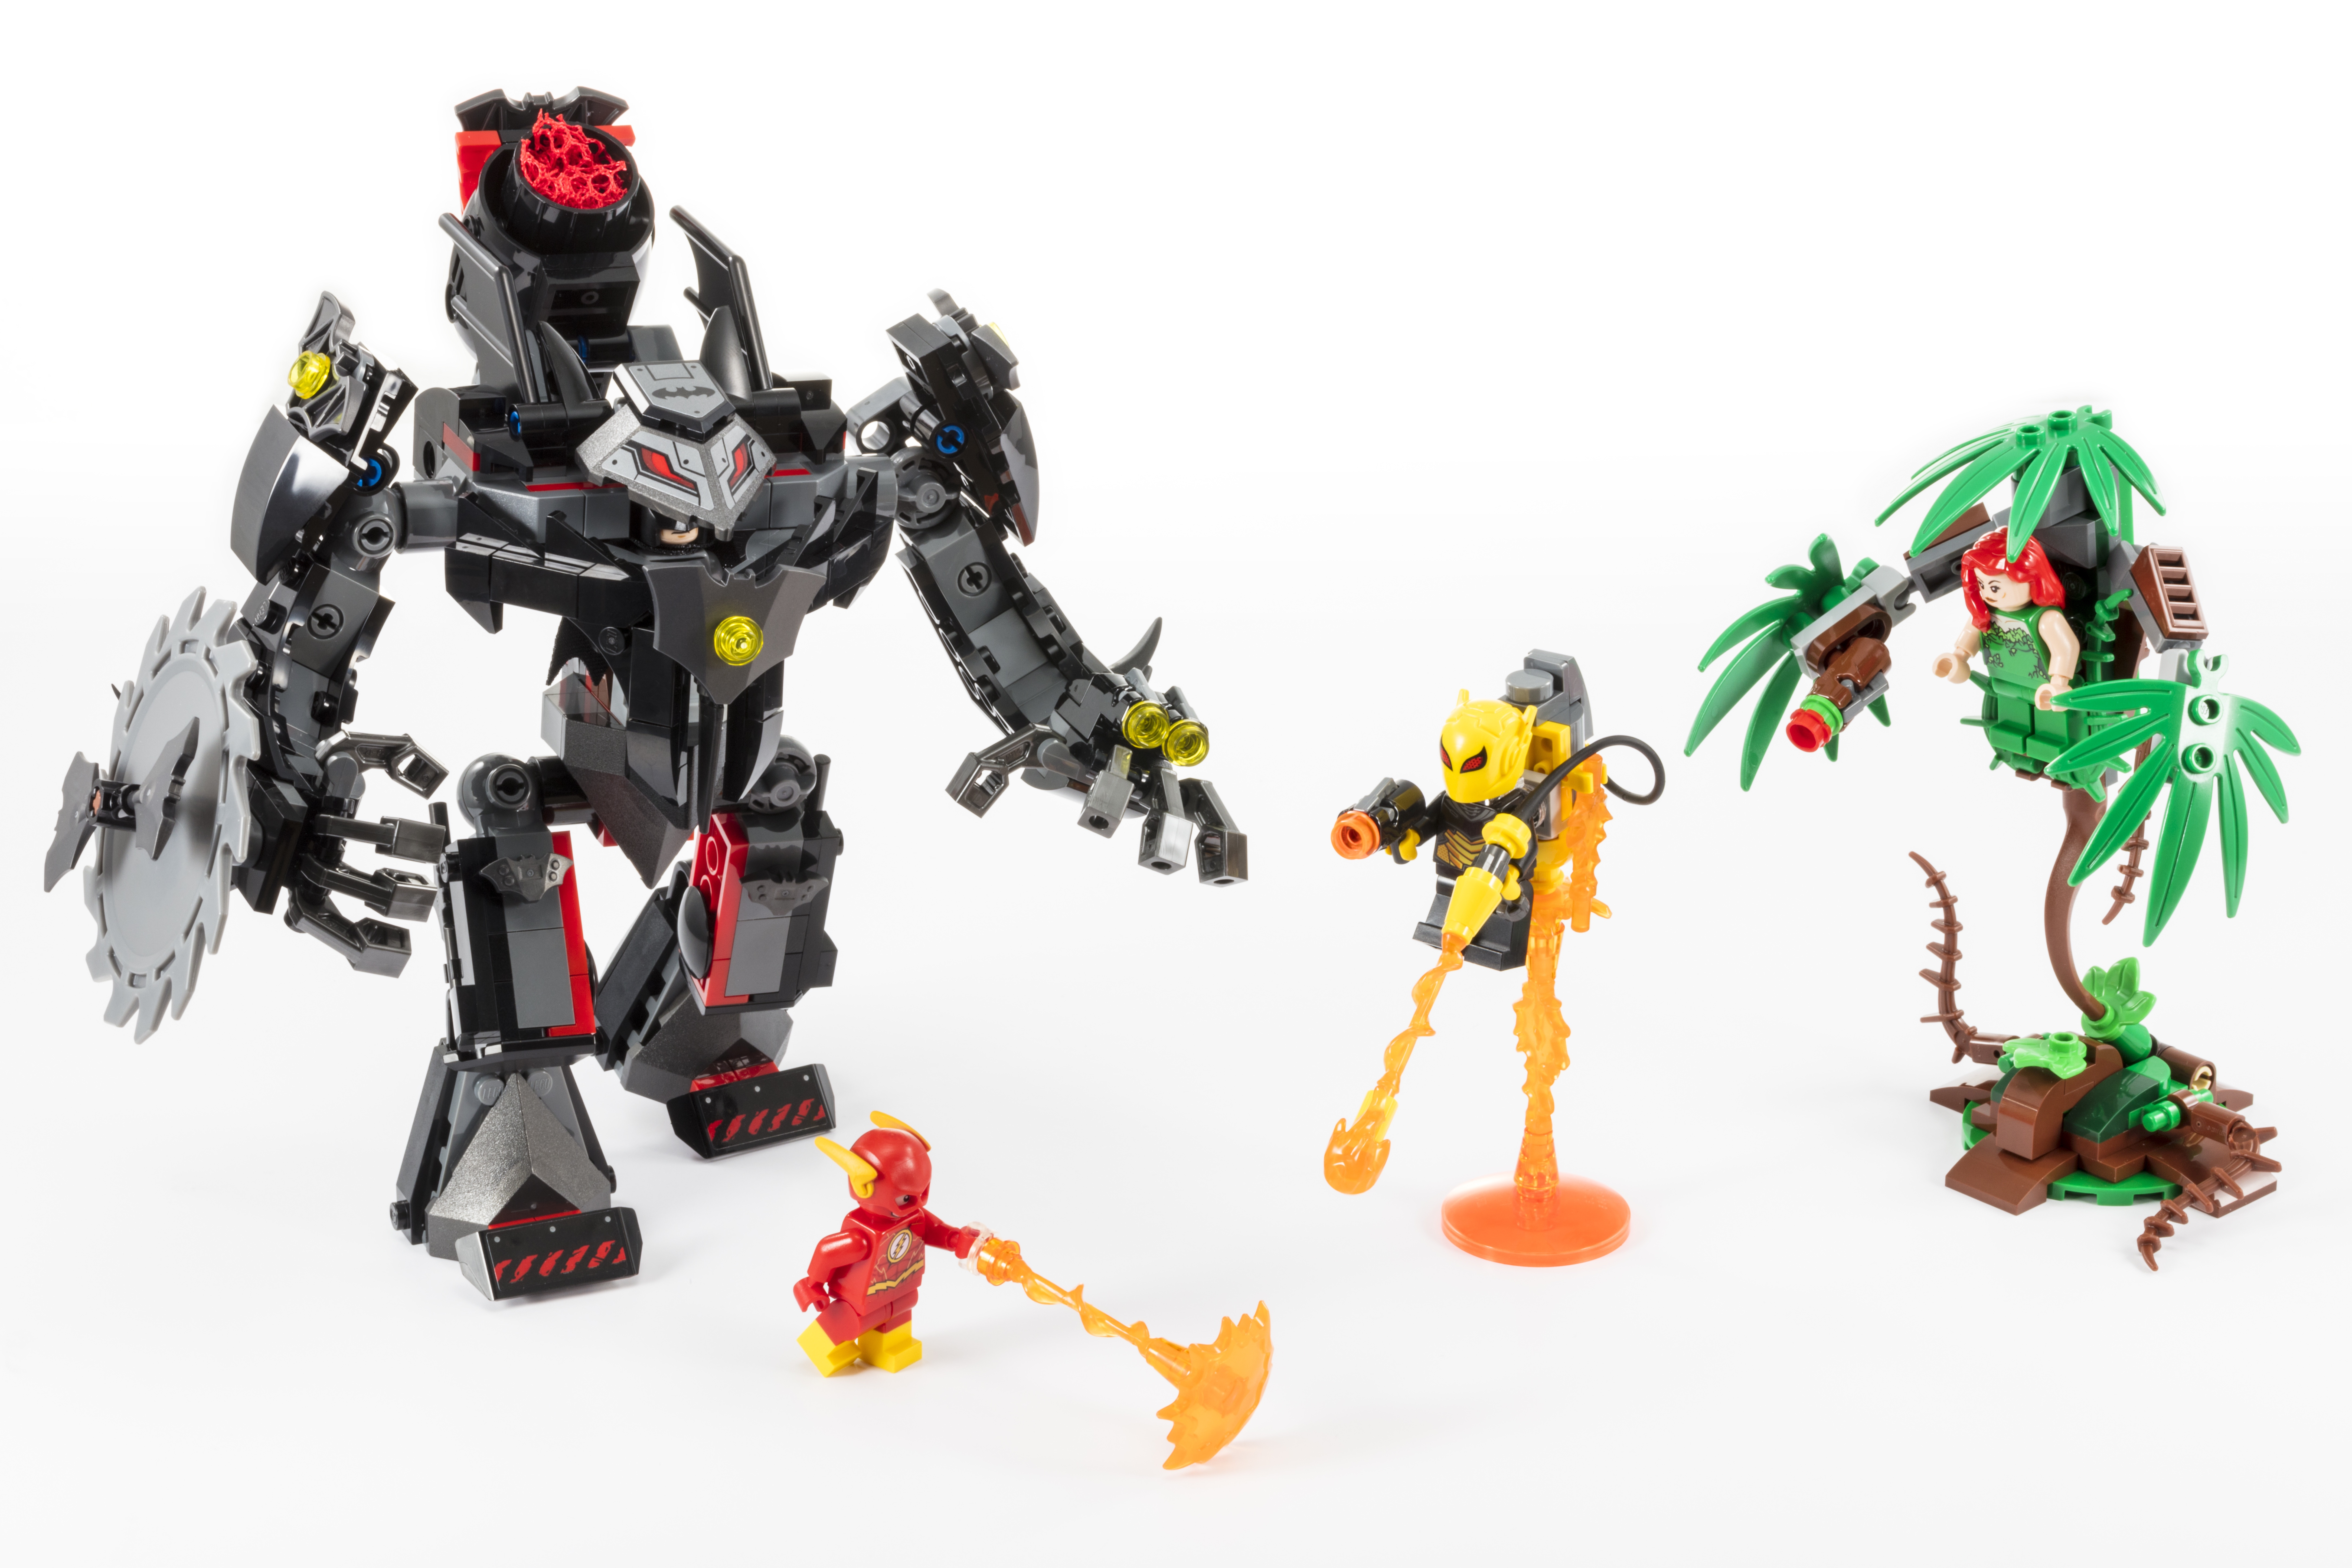 Exclusive Lego Reveal First Look At Upcoming Dc Super Heroes Set Batman Mech Vs Poison Ivy Mech Batman News